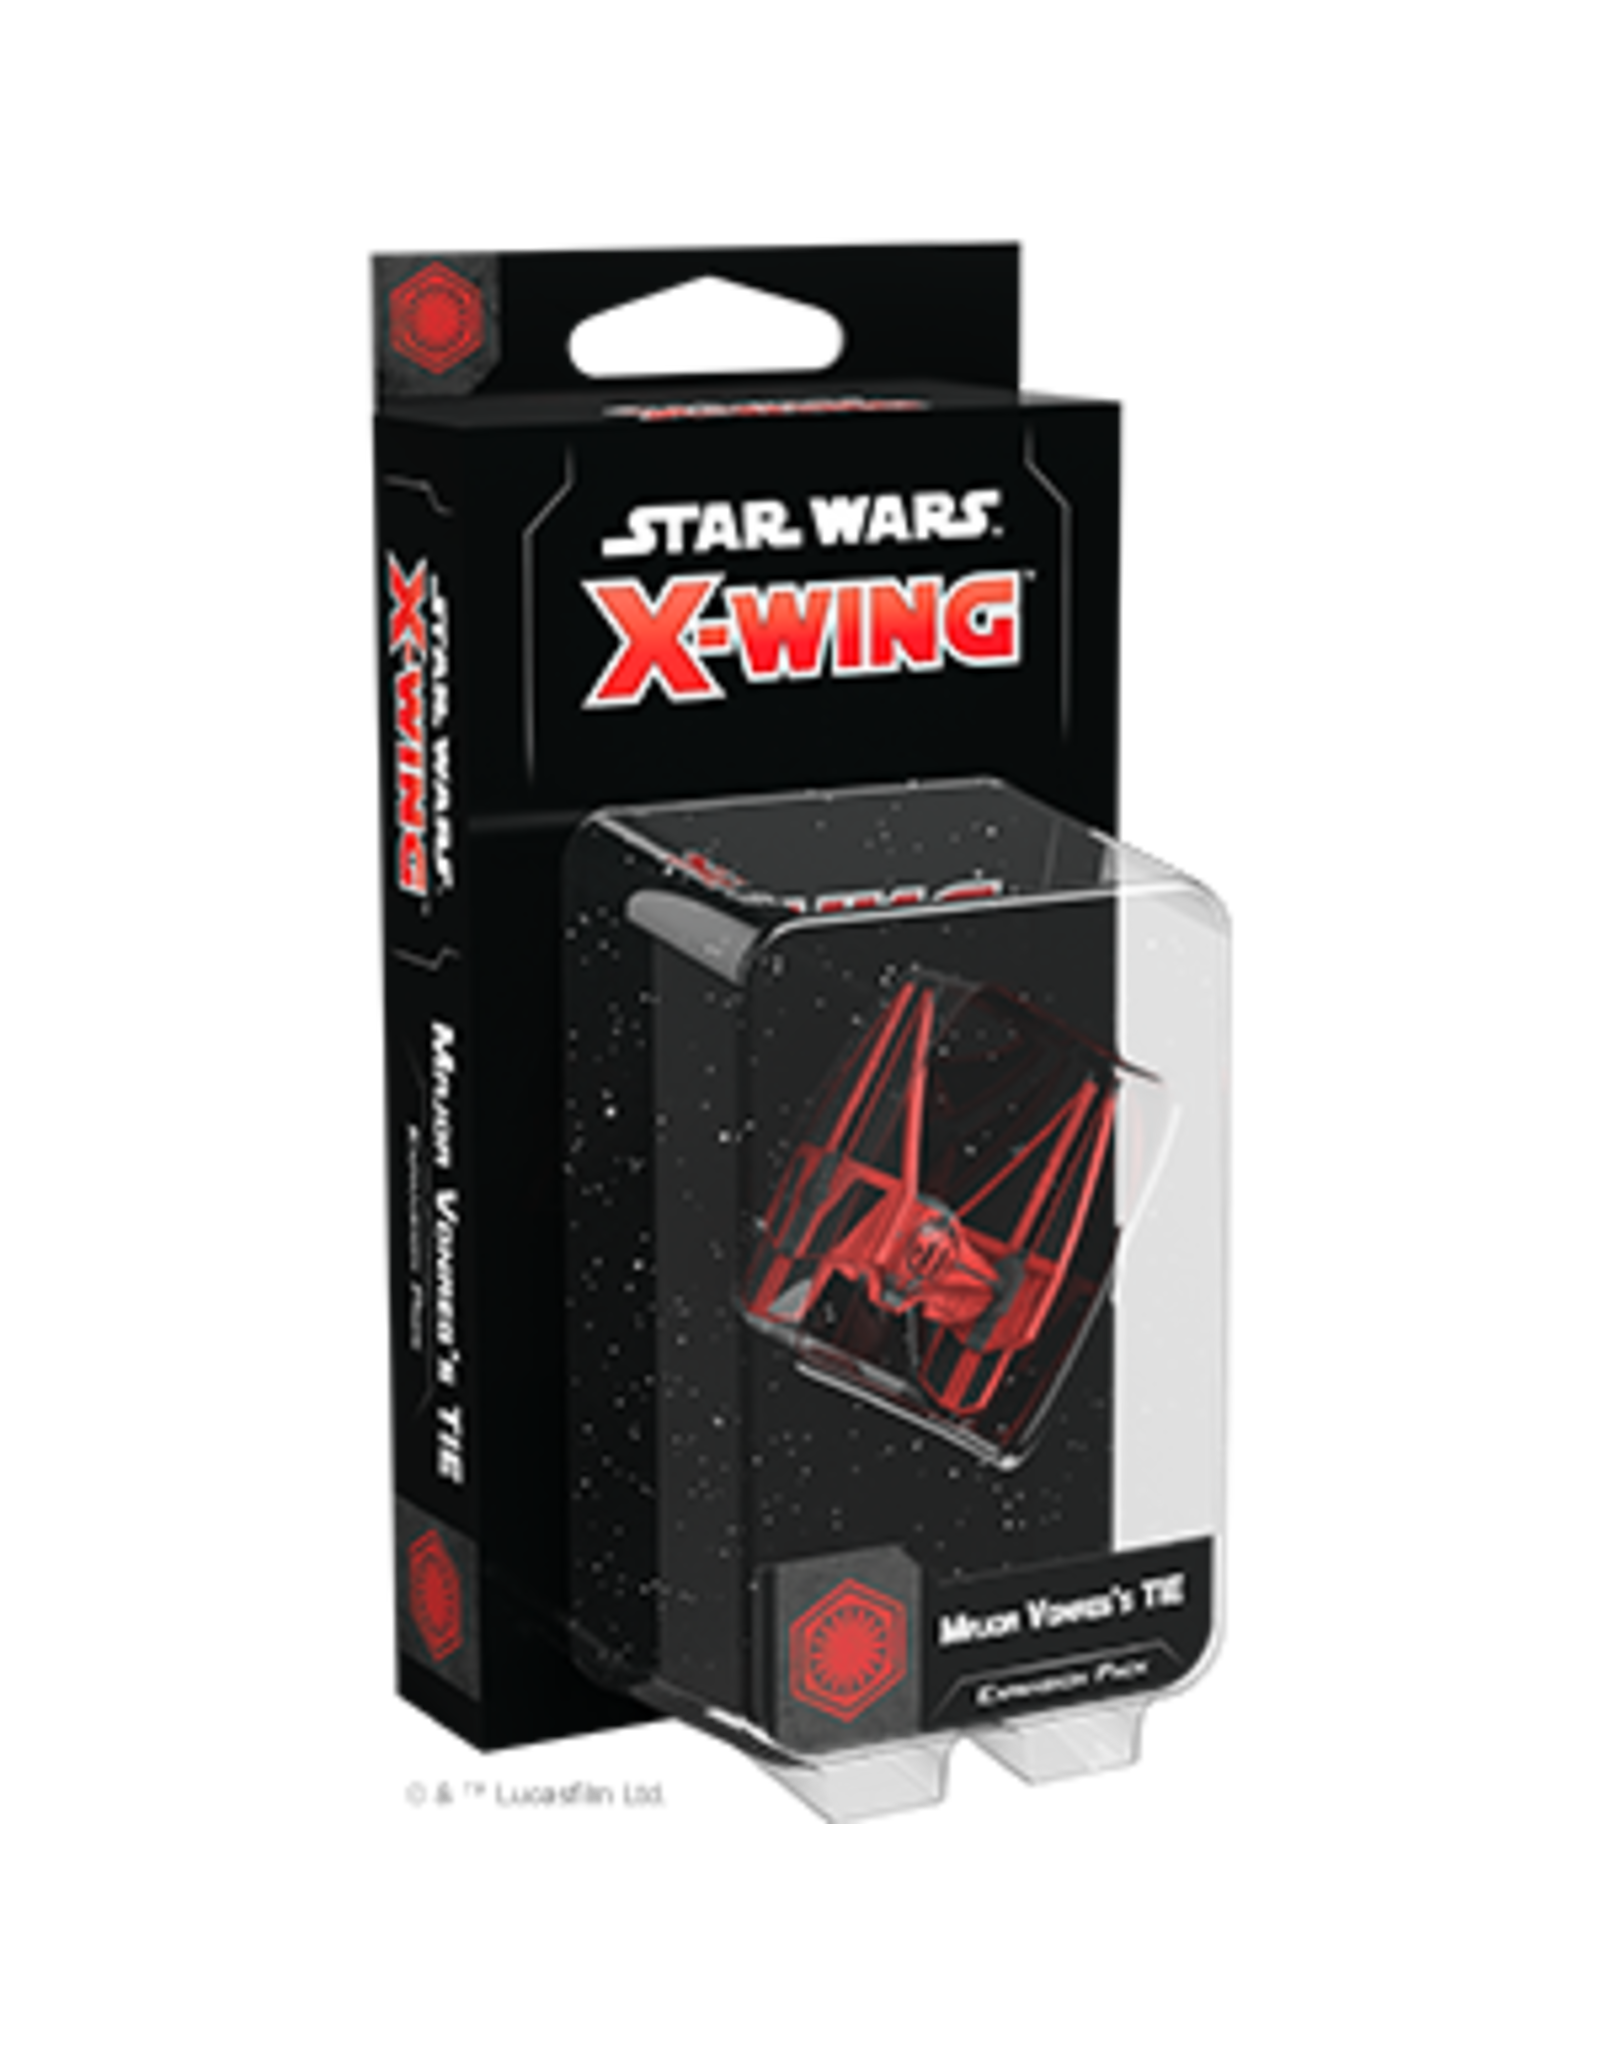 Fantasy Flight Games Star Wars X-wing 2E: Major Vonreg's TIE